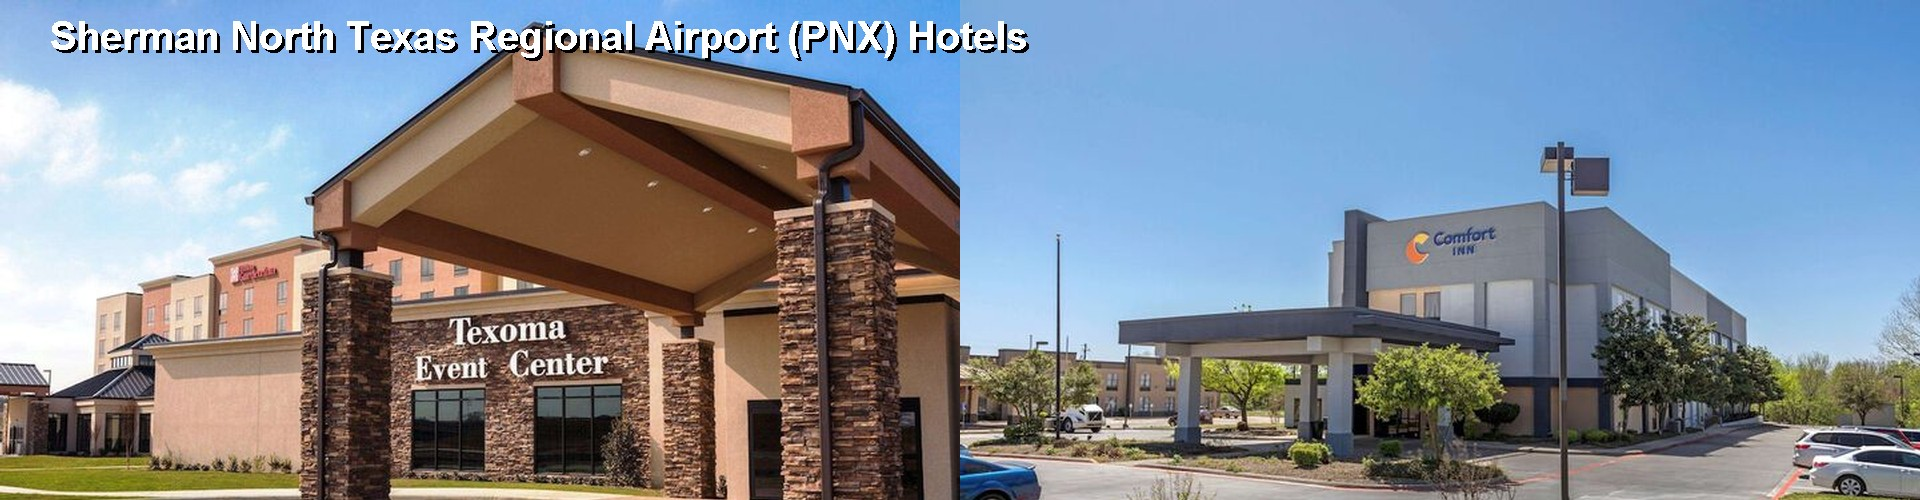 5 Best Hotels near Sherman North Texas Regional Airport (PNX)